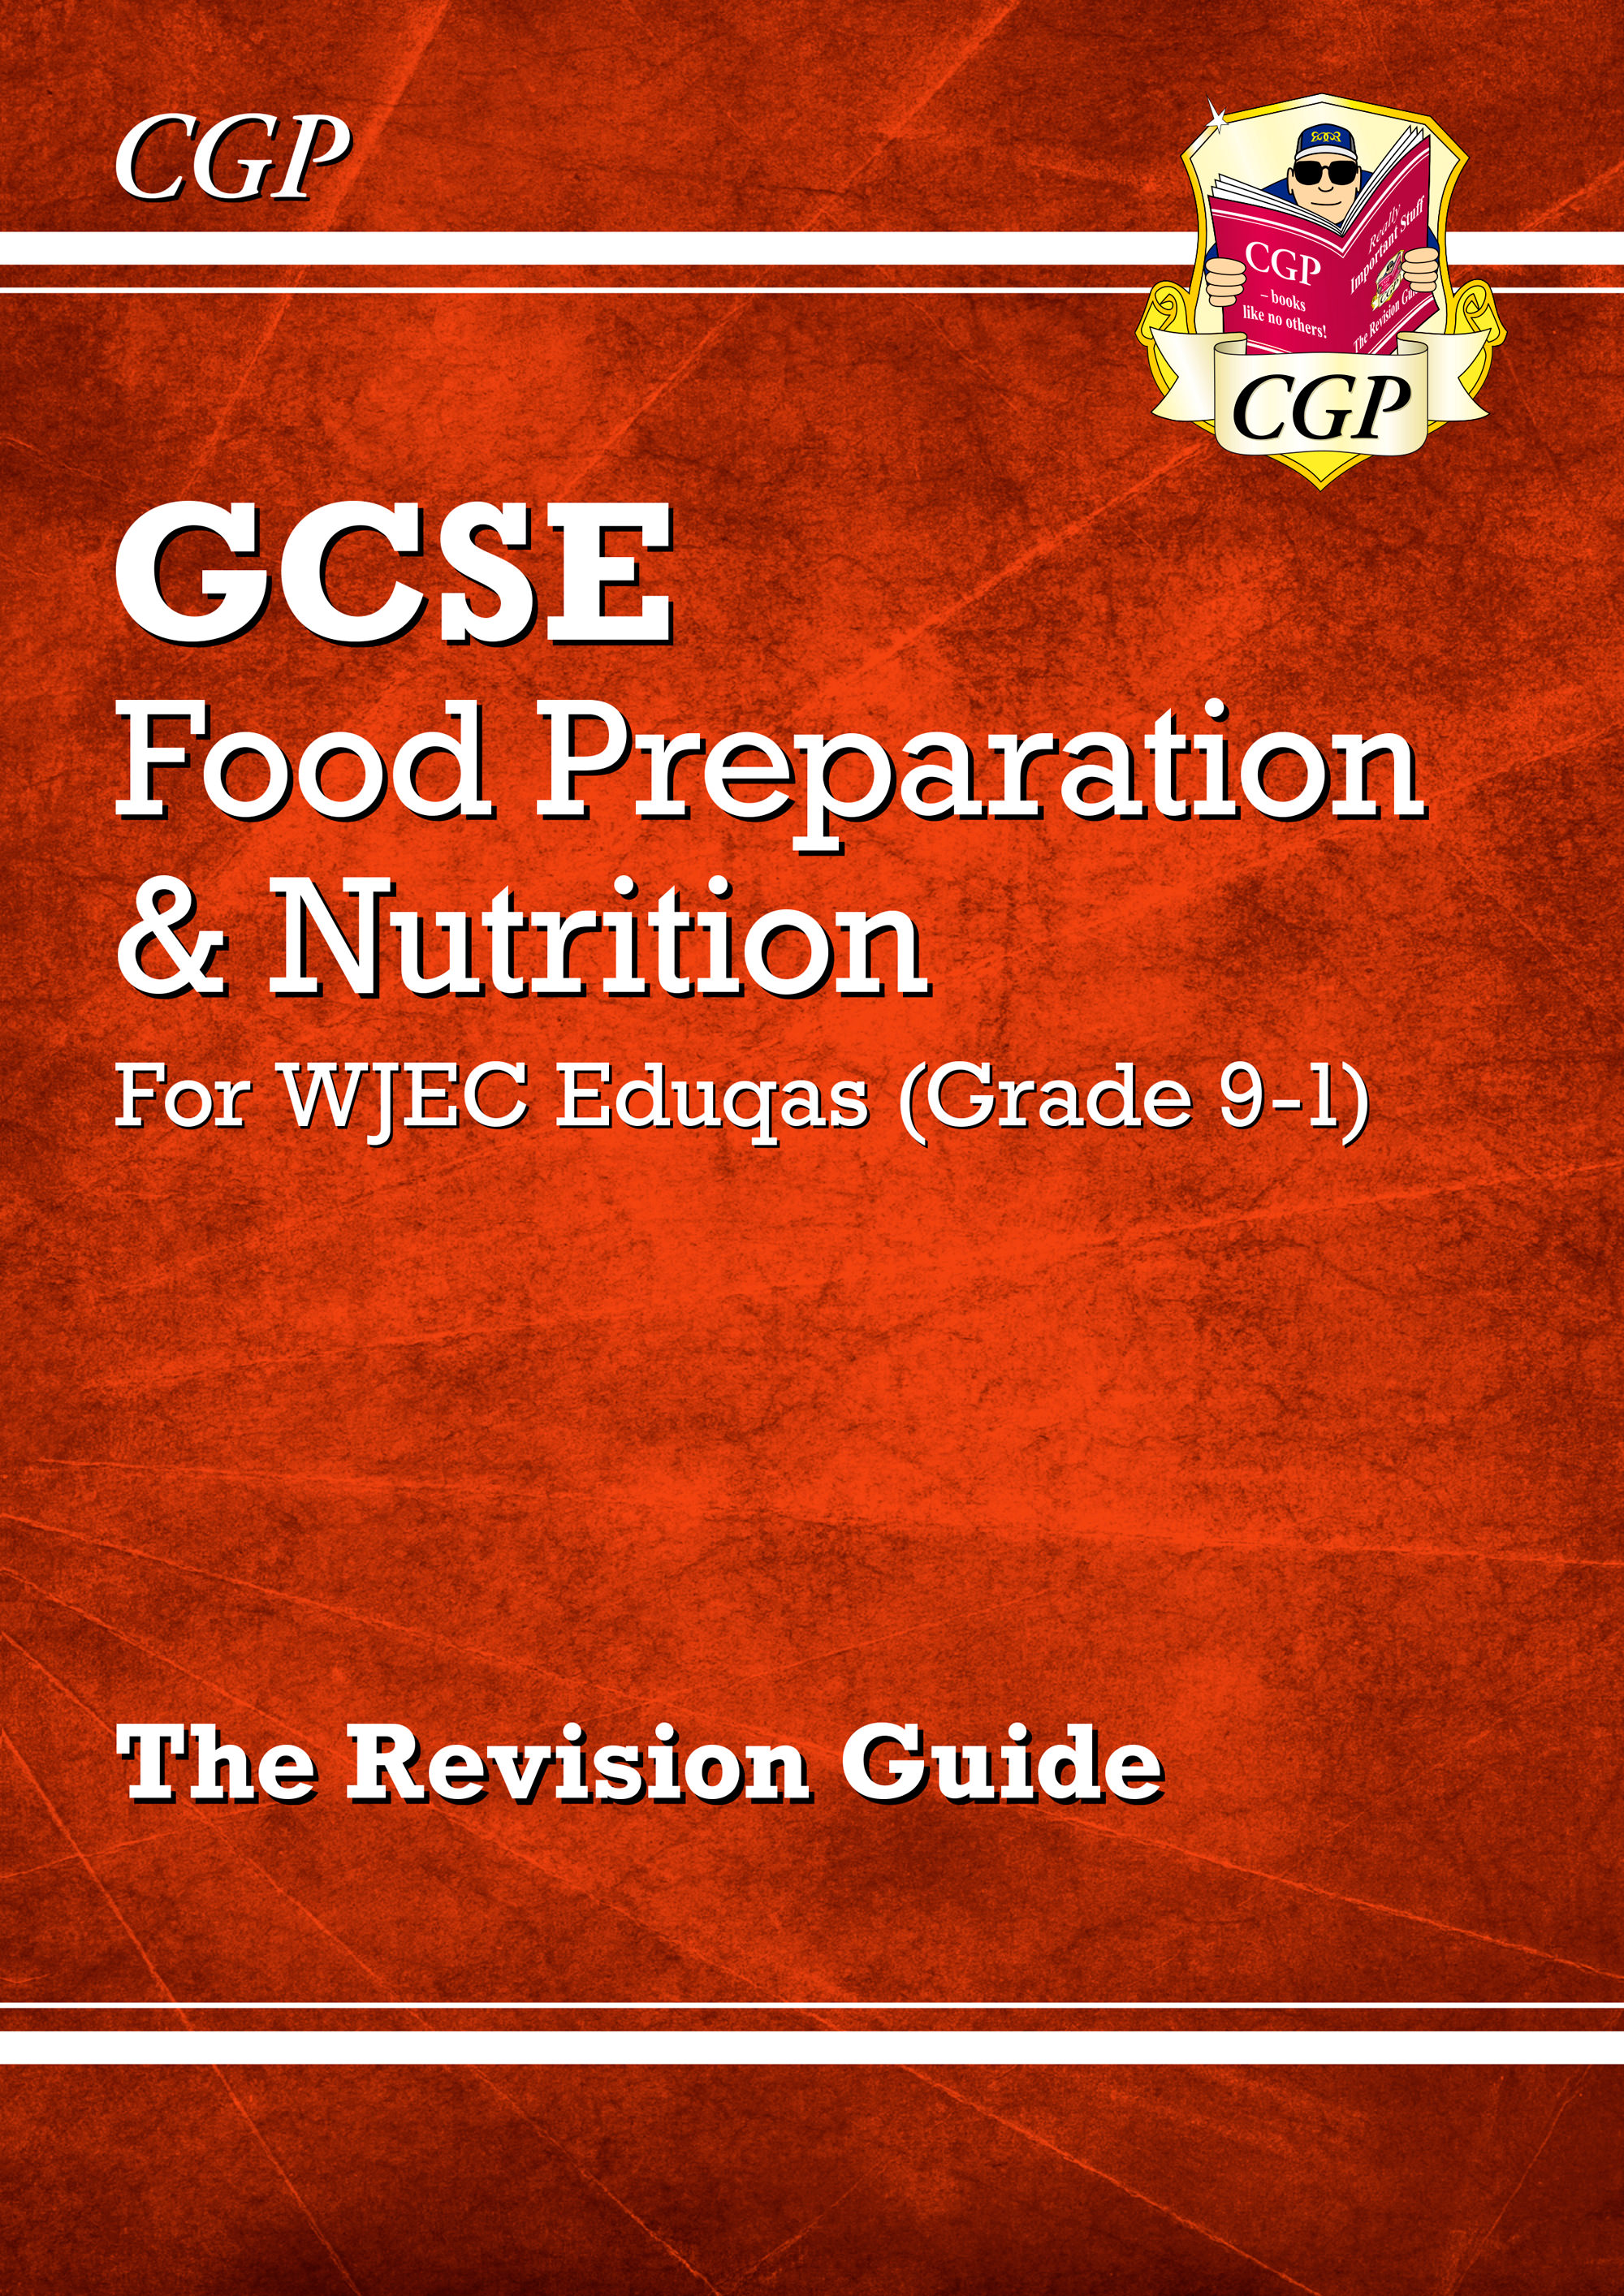 FNWR41DK - New Grade 9-1 GCSE Food Preparation & Nutrition - WJEC Eduqas Revision Guide